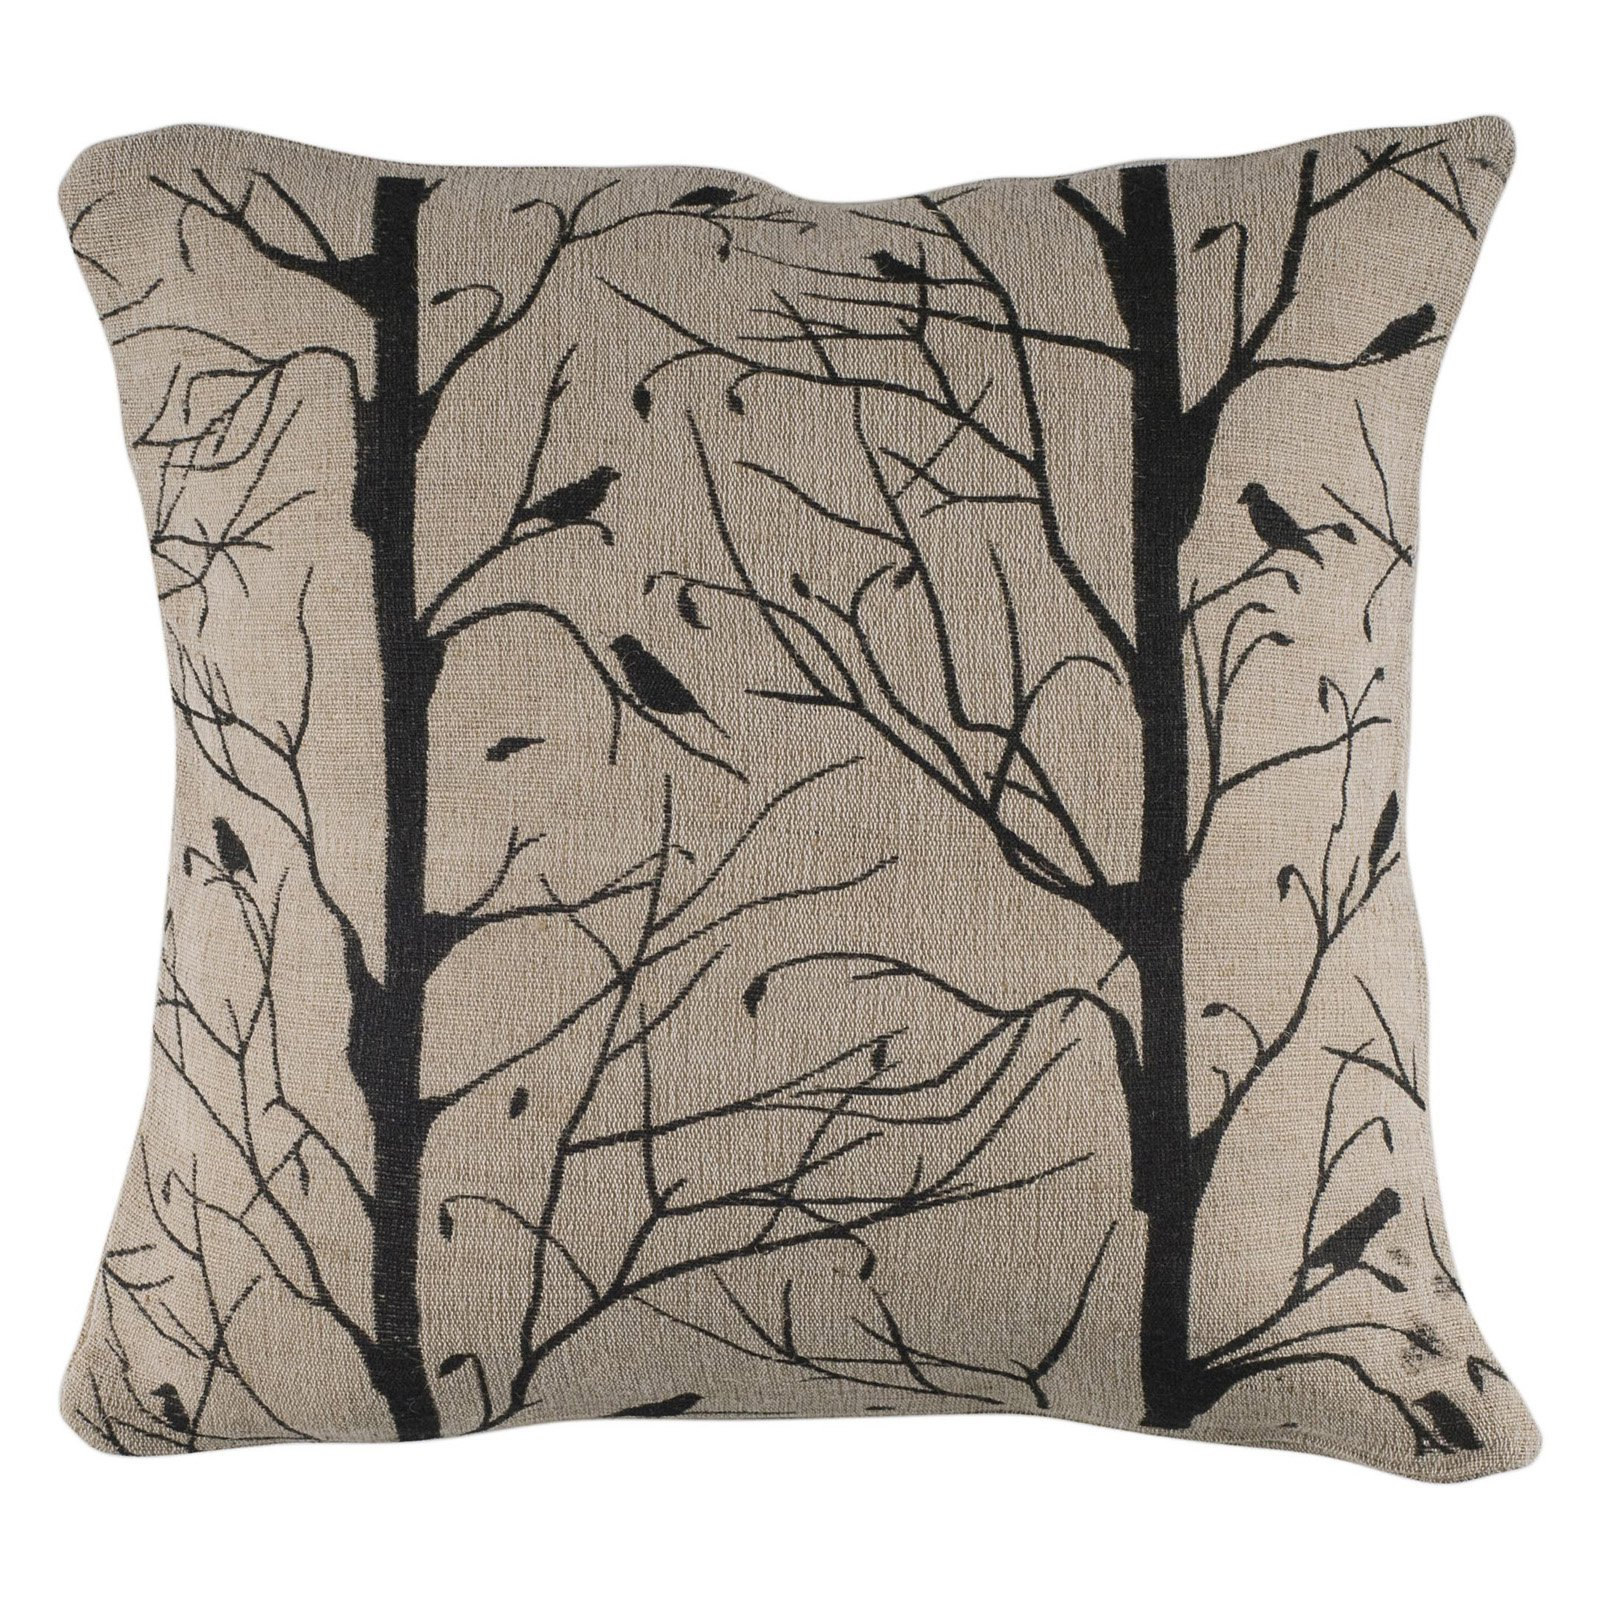 Natural Bird and Trees Printed Pillow T03956